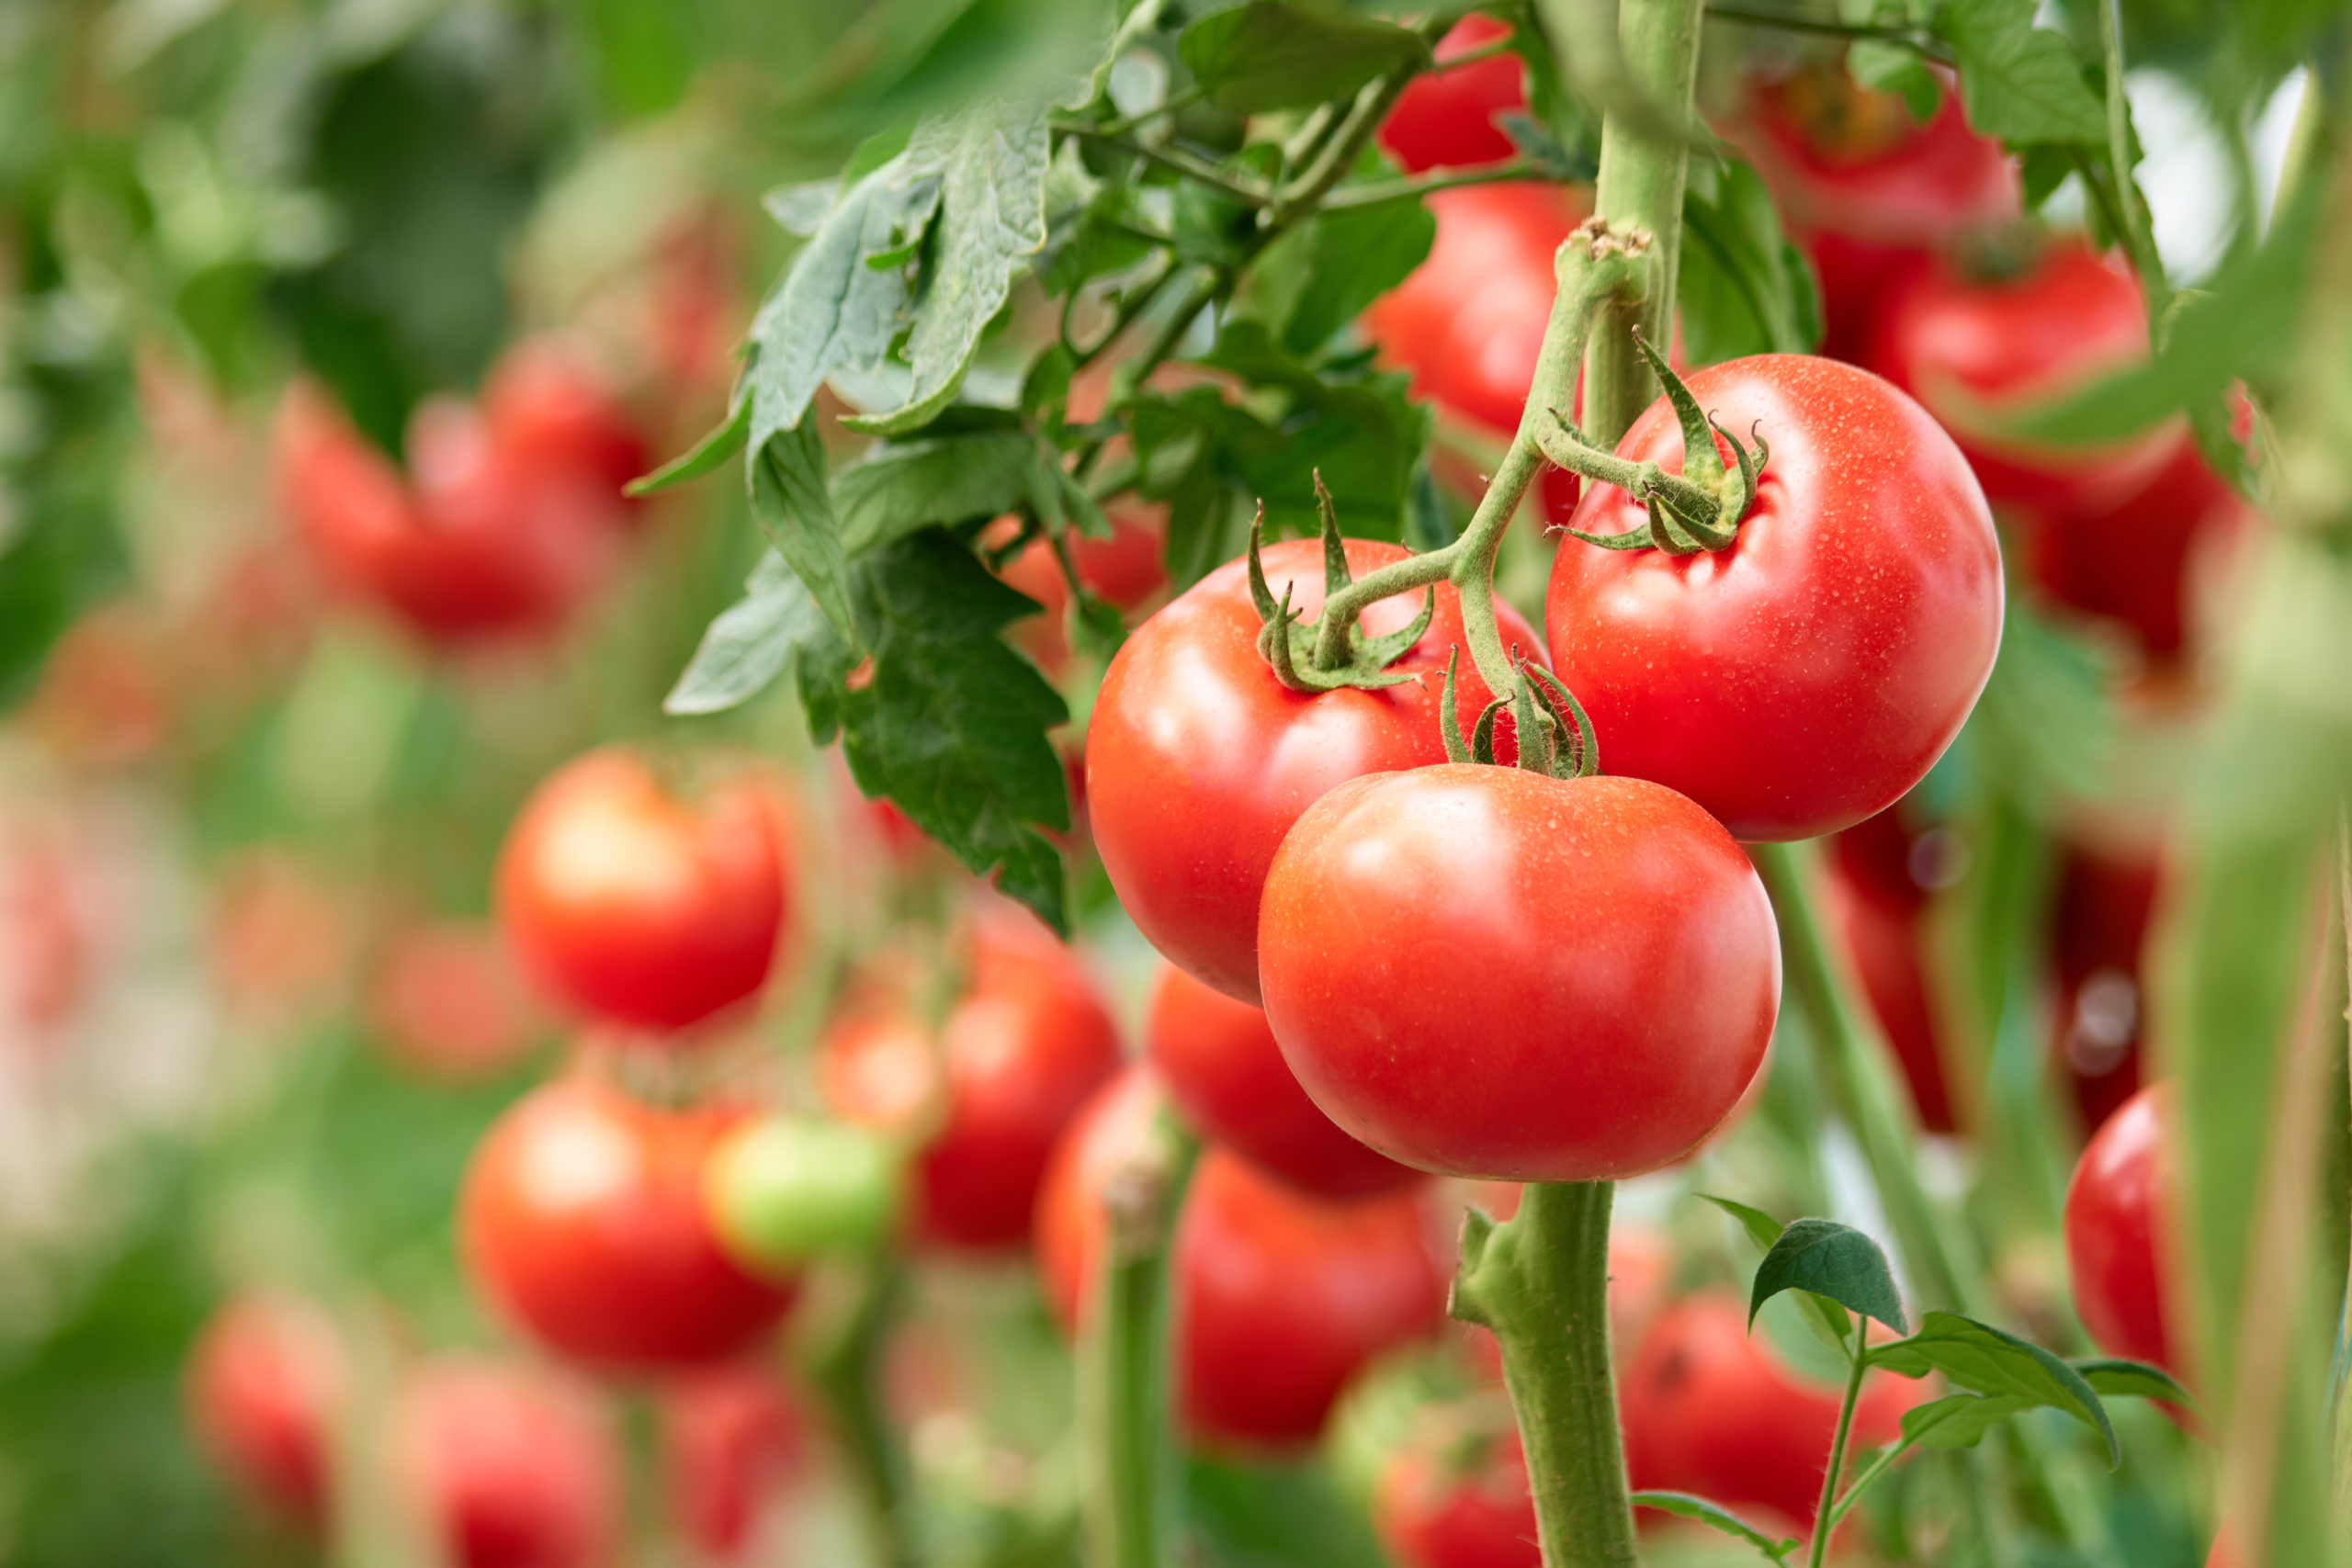 Homegrown tomatoes on the vine